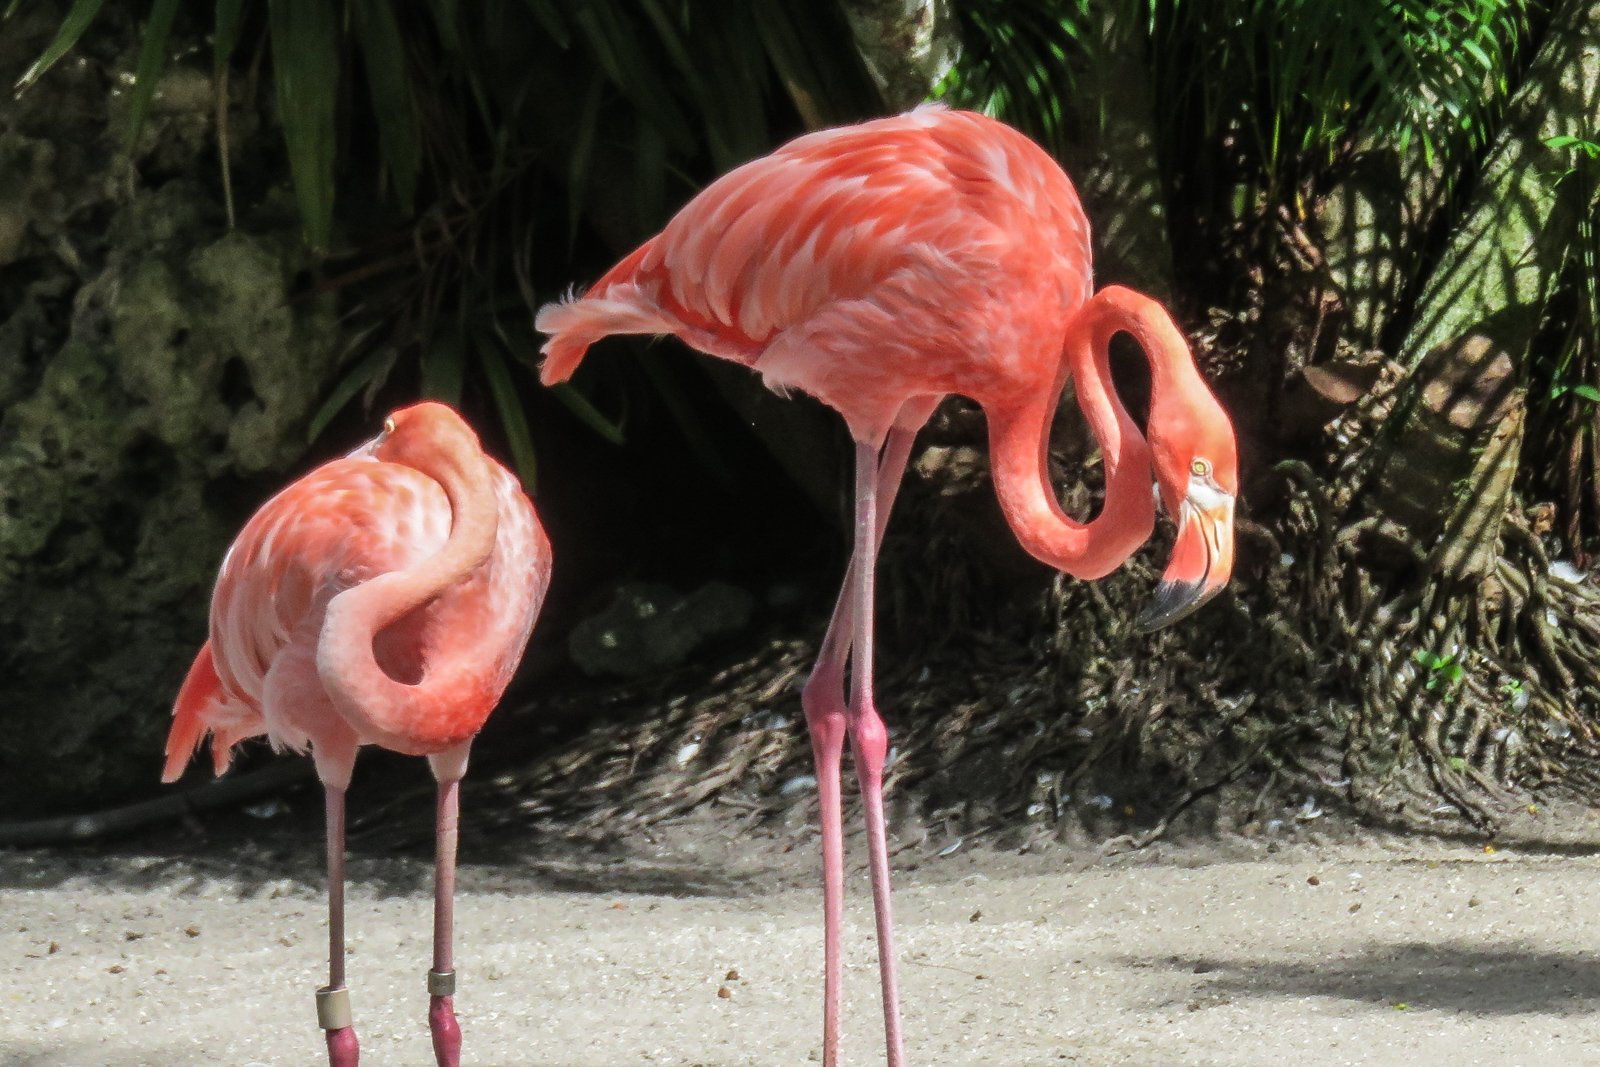 Top things to do in Fort Lauderdale Flamingo Gardens. Discover the wonders of nature in the parks, gardens and everglades surrounding Fort Lauderdale.